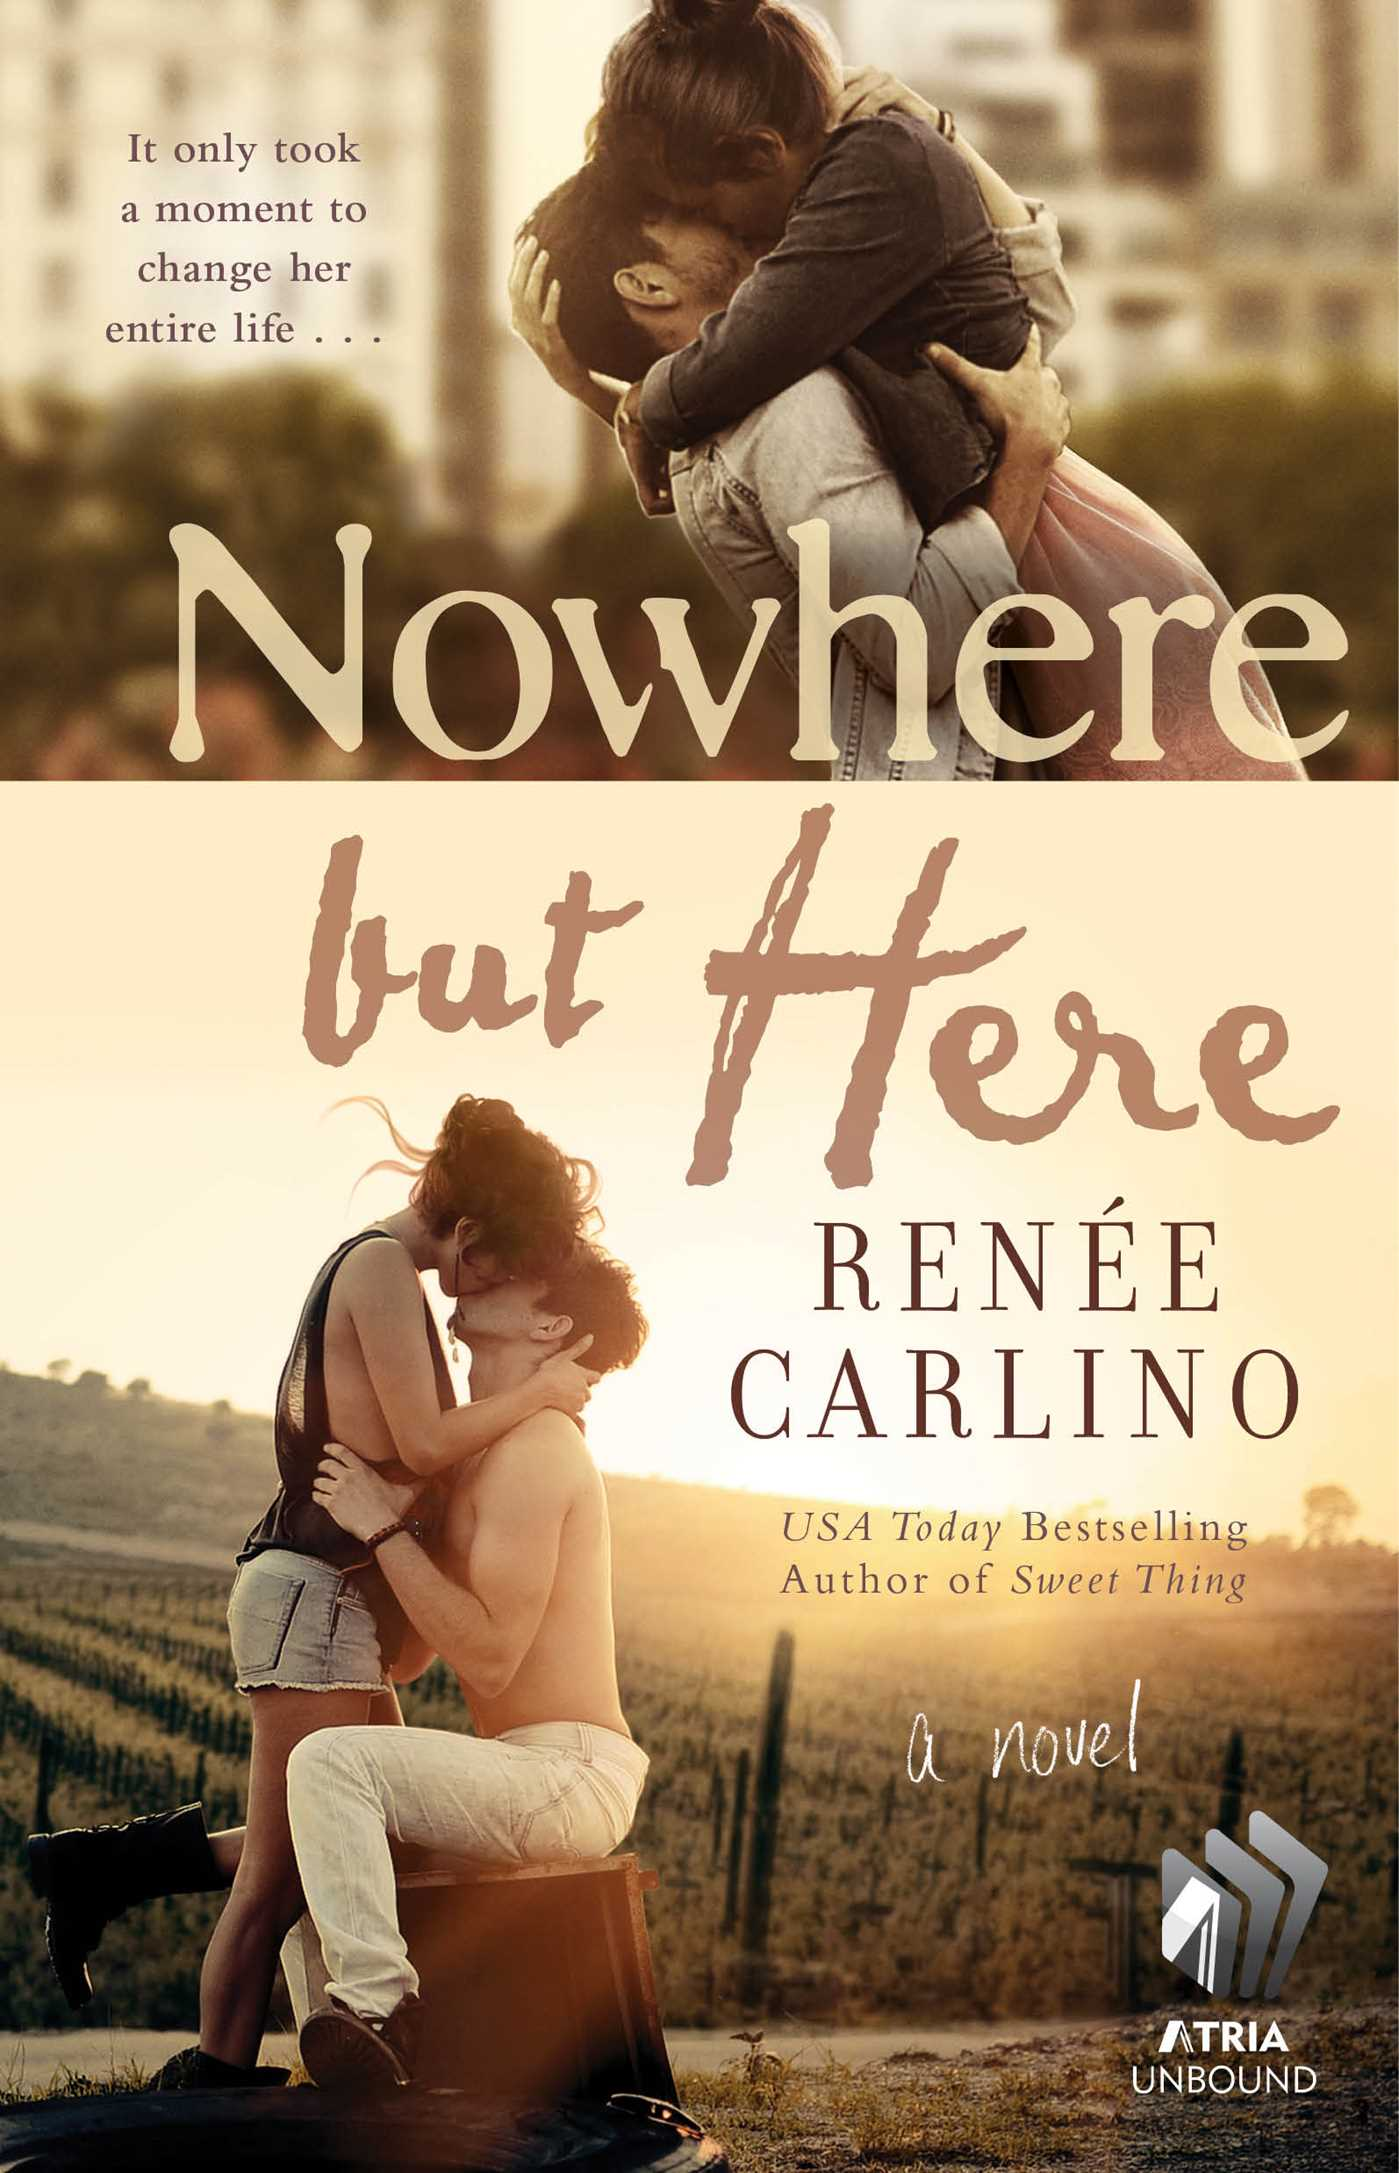 Nowhere-but-here-9781476763972_hr